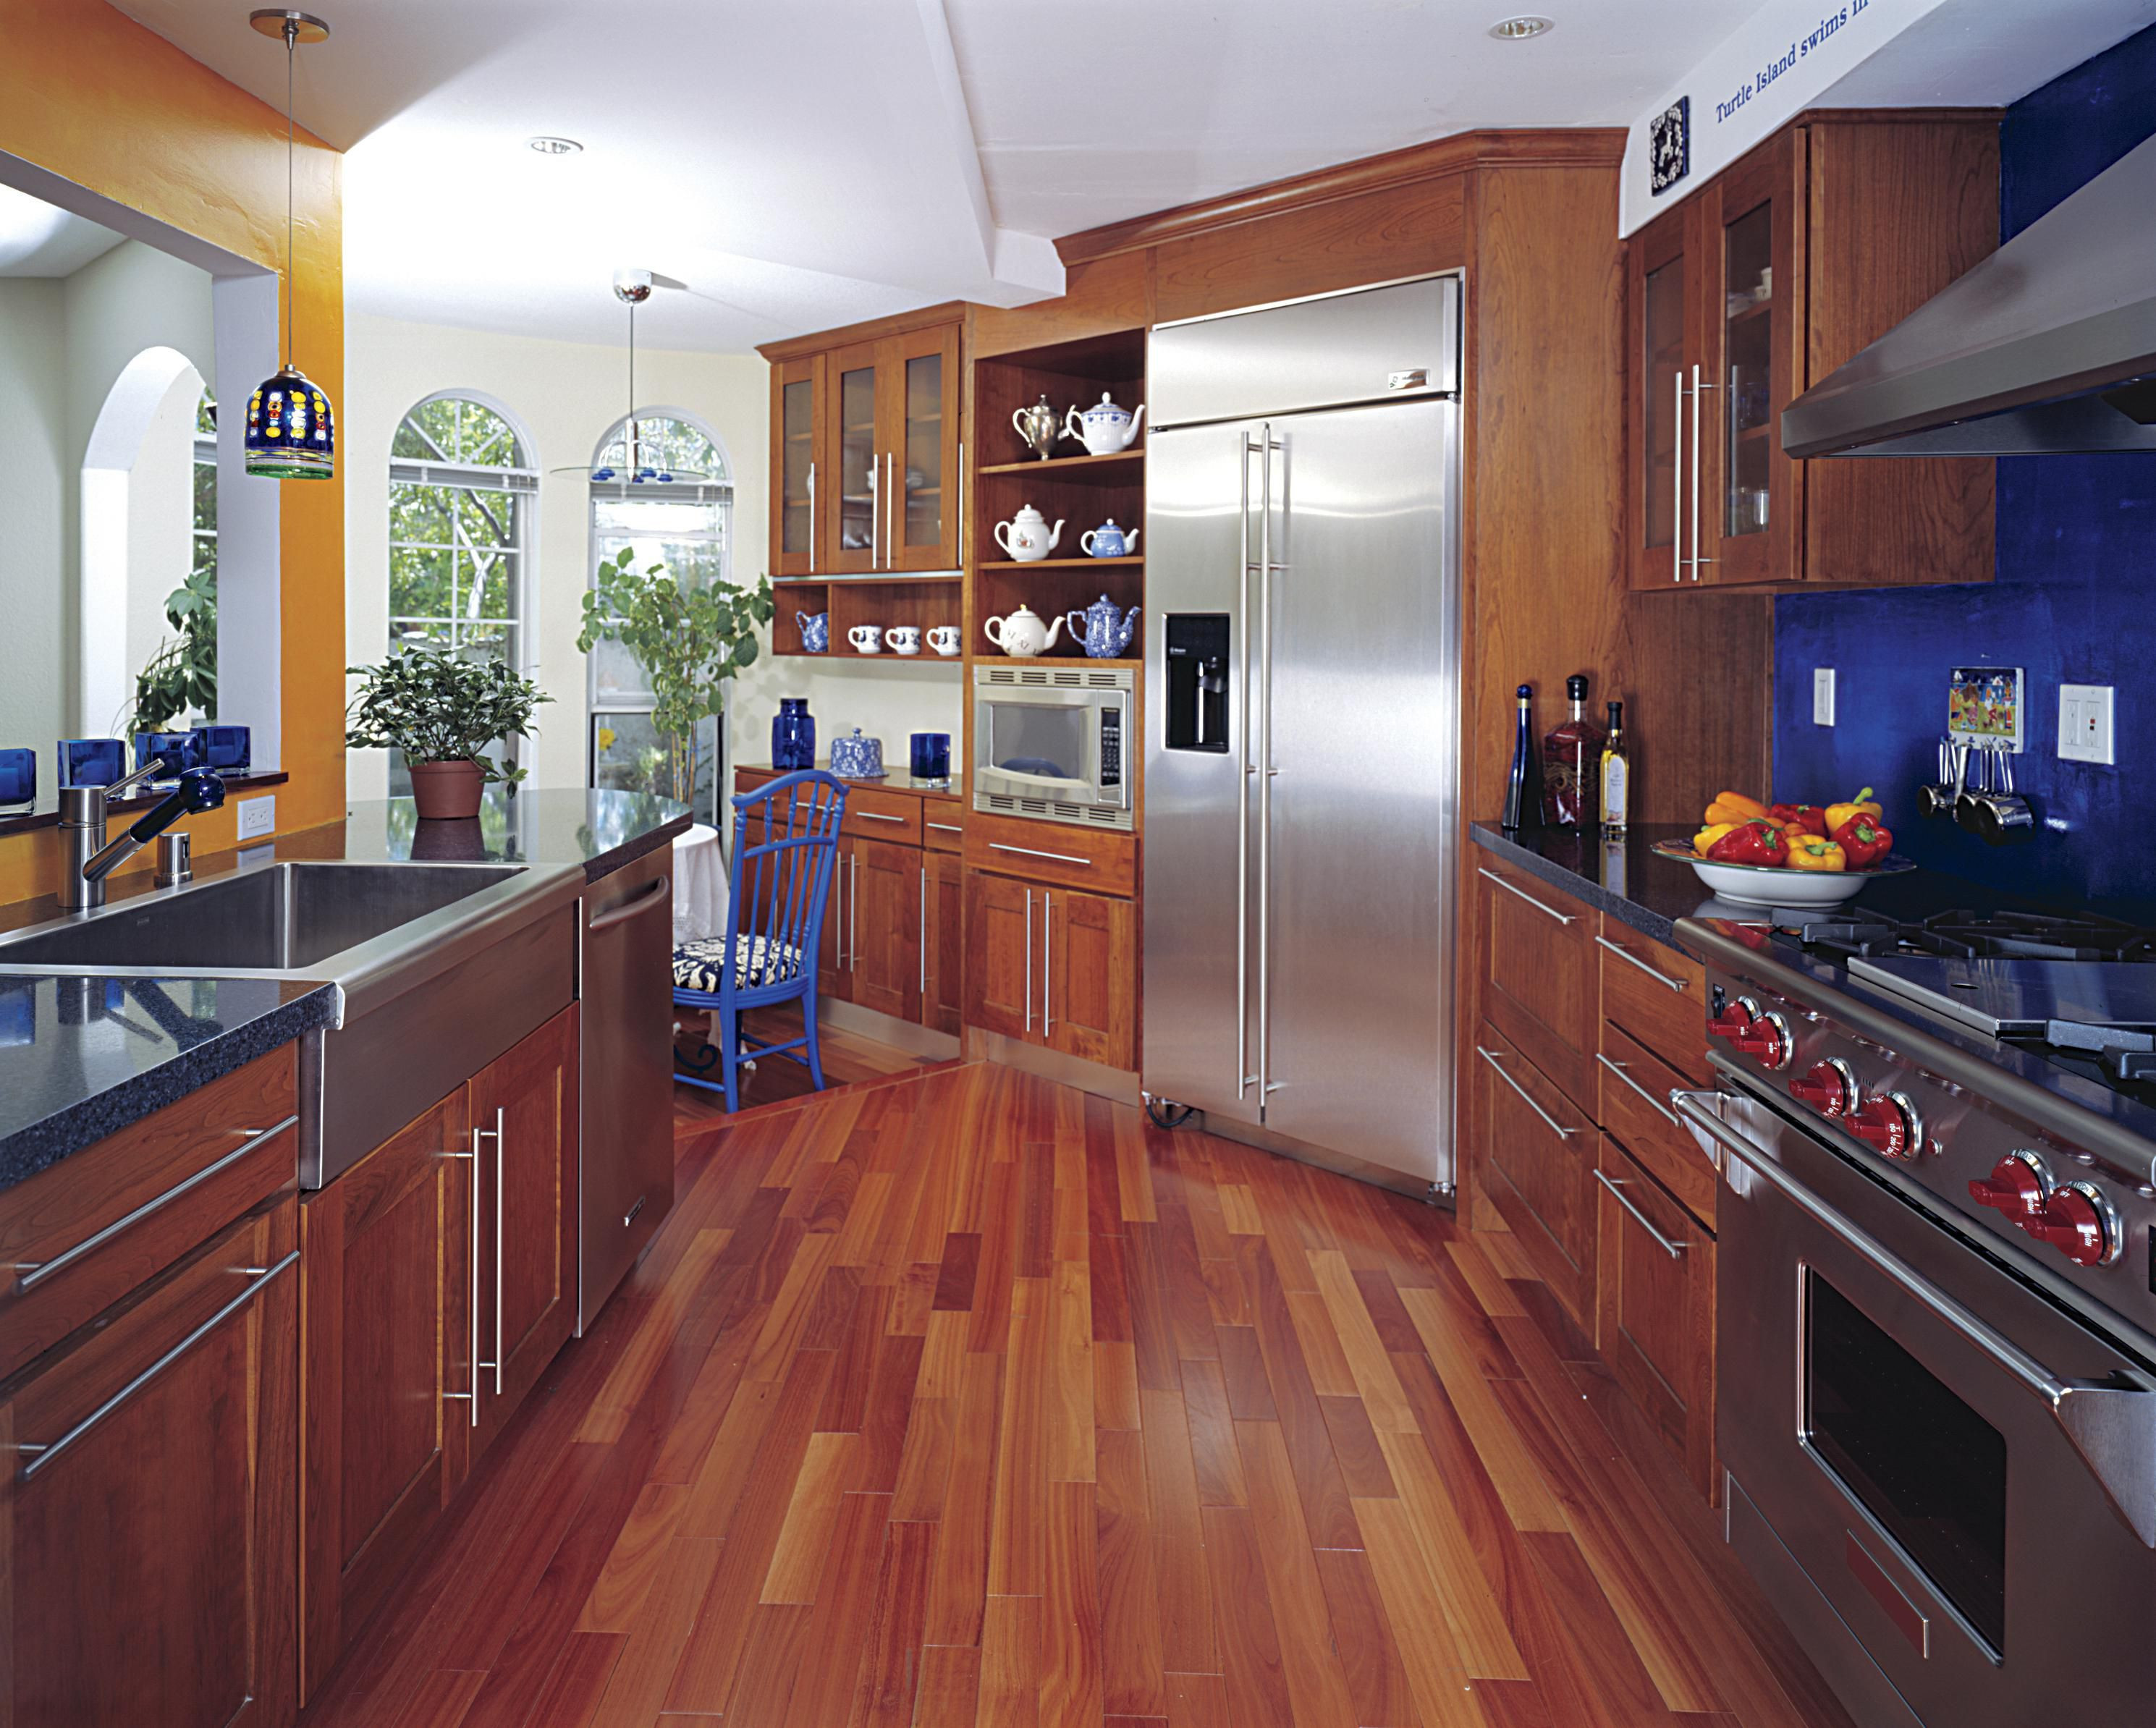 hardwood floor repair kit of hardwood floor in a kitchen is this allowed in 186828472 56a49f3a5f9b58b7d0d7e142